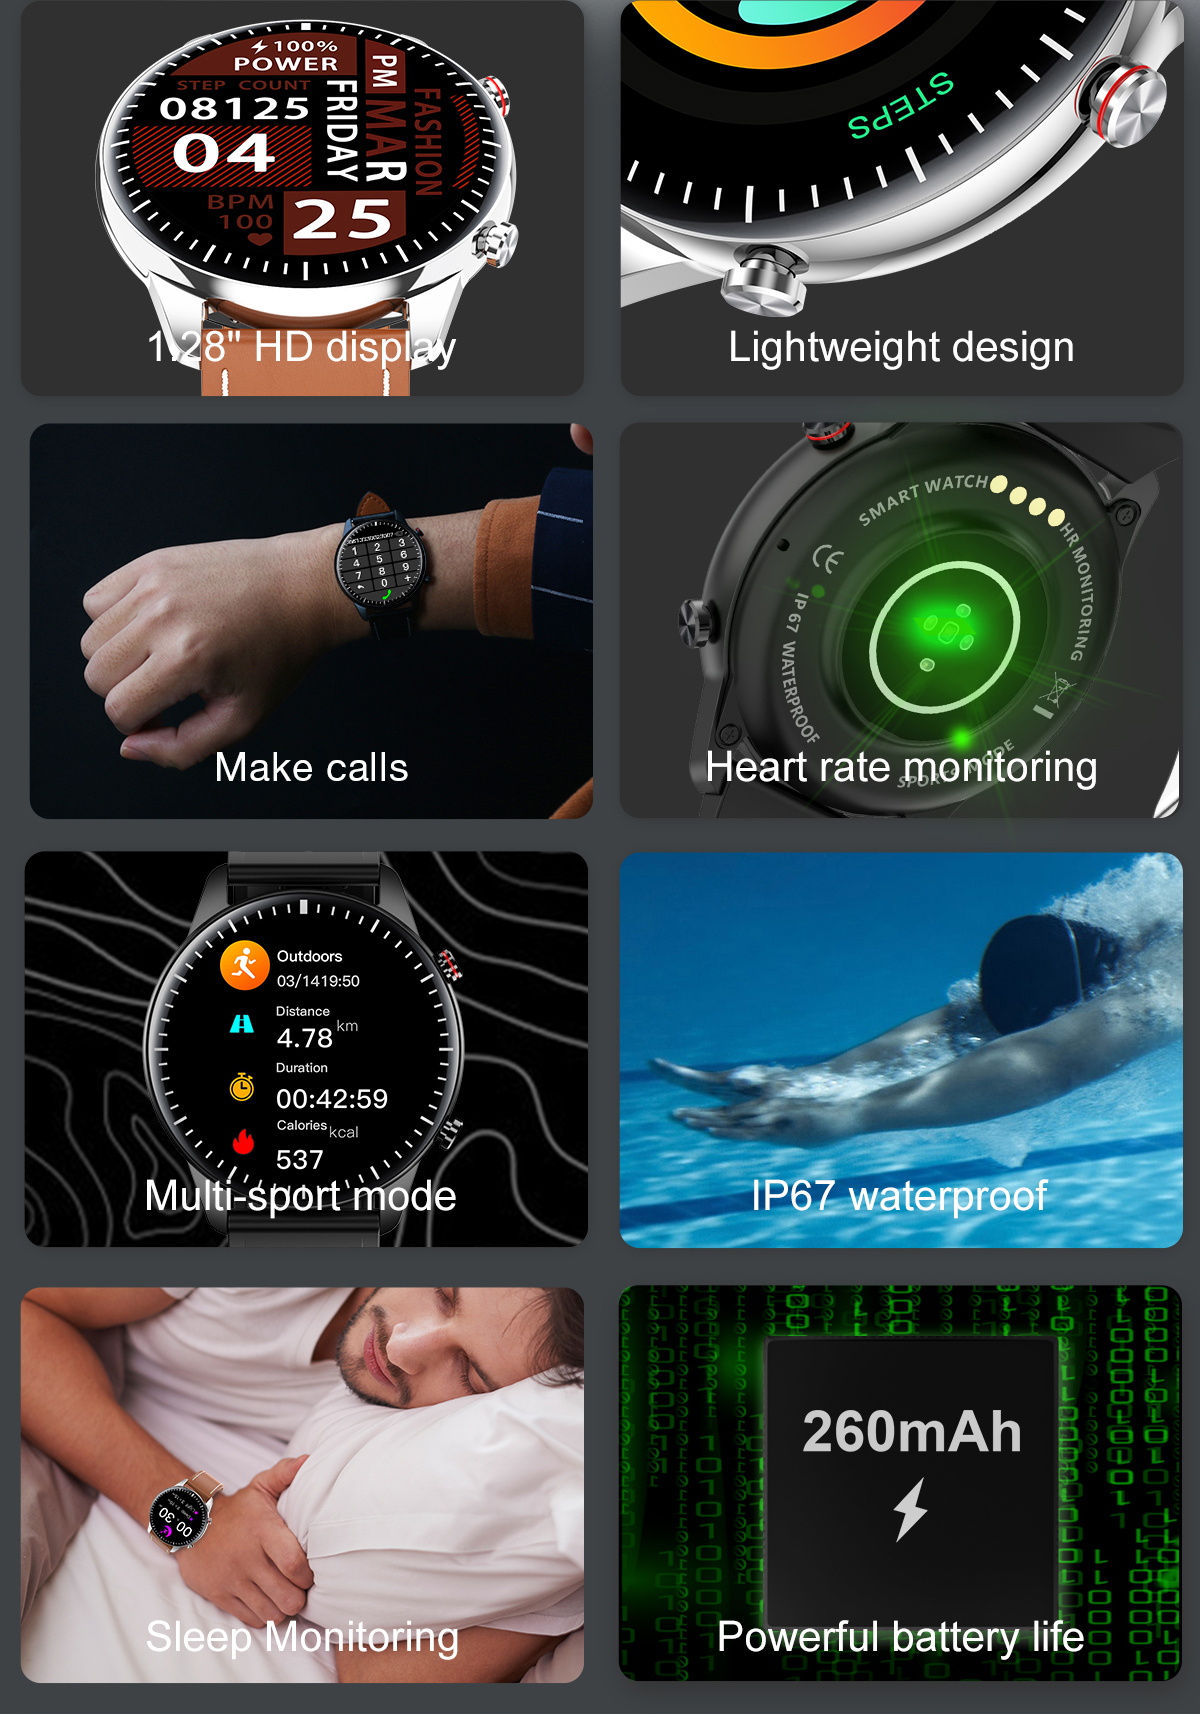 H44d7398341f545cb94b5e9b6c7346efat 2021 NEW Smart Watch Women Men Full Touch Fitness Tracker IP67 Waterproof Smartwatch For Android Xiaomi Redmi